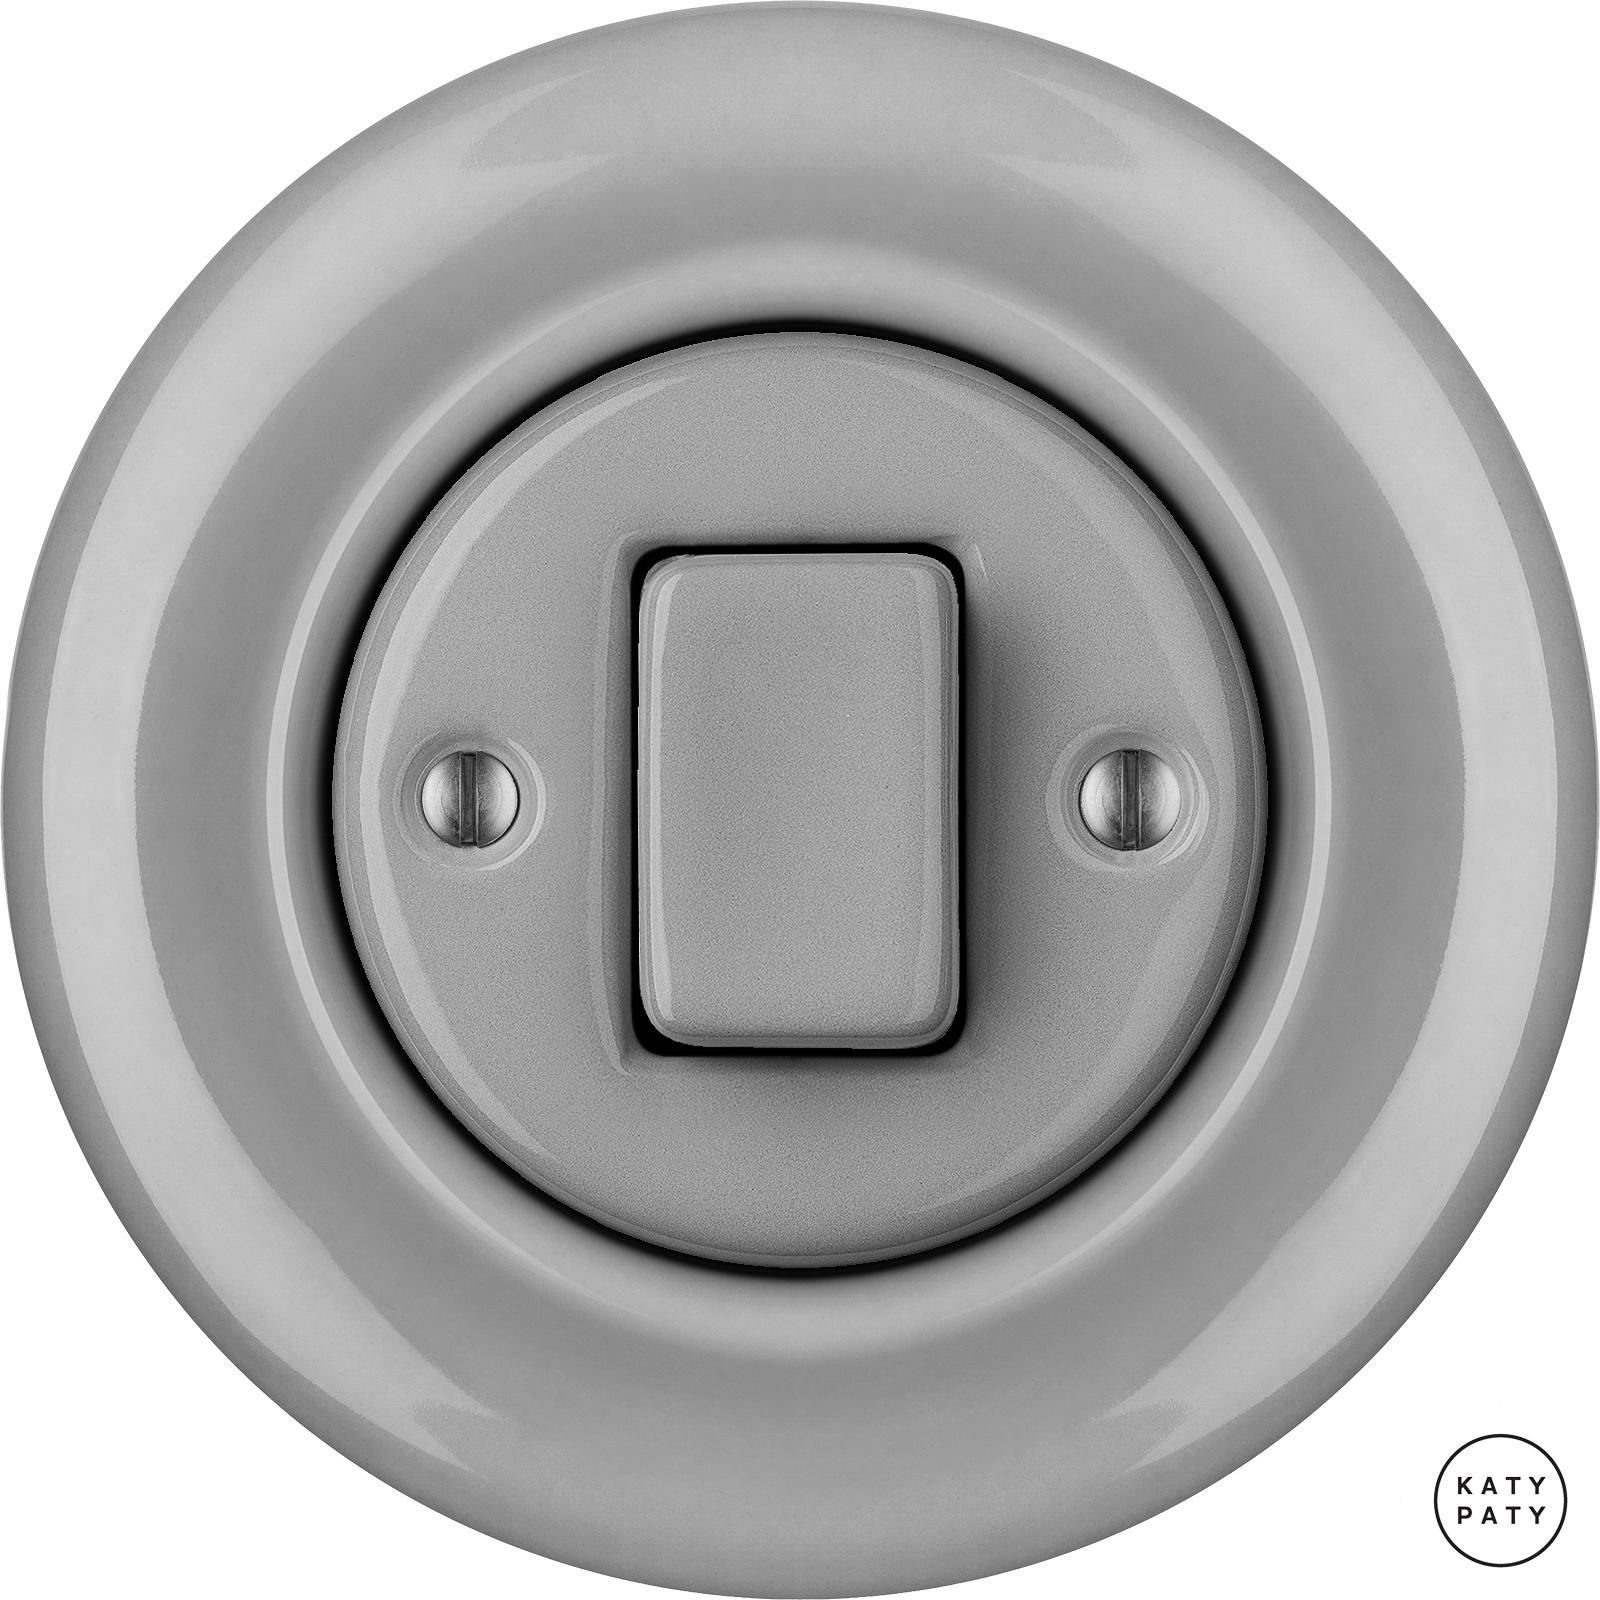 Porcelain switches - 1 key - FAT ()  - CANA | Katy Paty